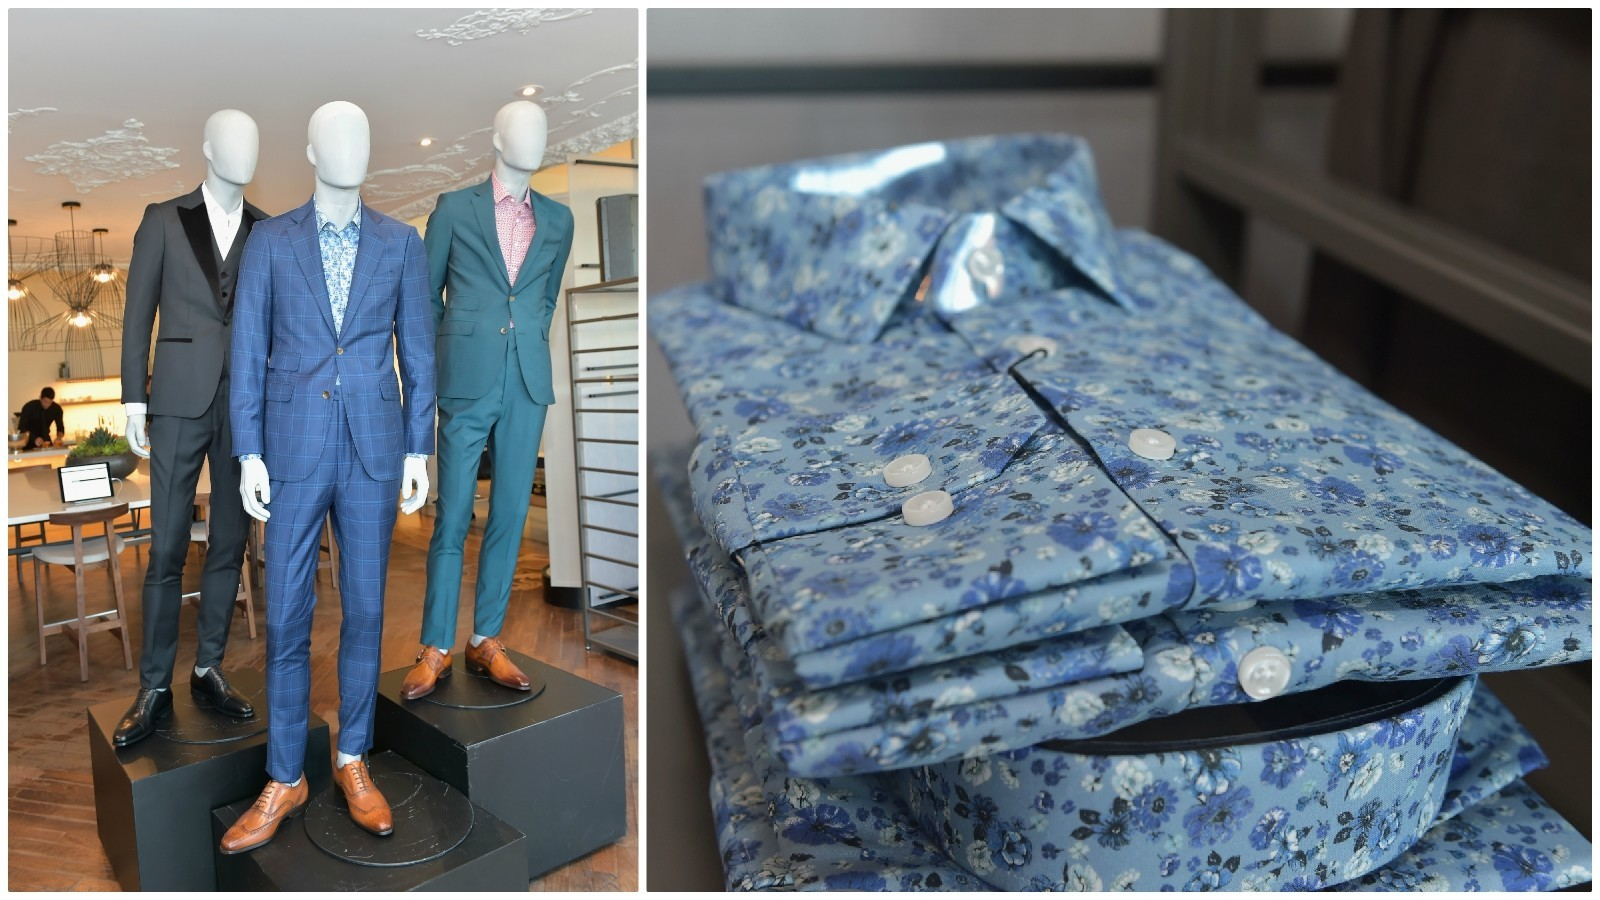 The Strong Suit by Ilaria Urbinati collection includes suits (left) and boldly patterned shirts (right) as well as neckties (not pictured).